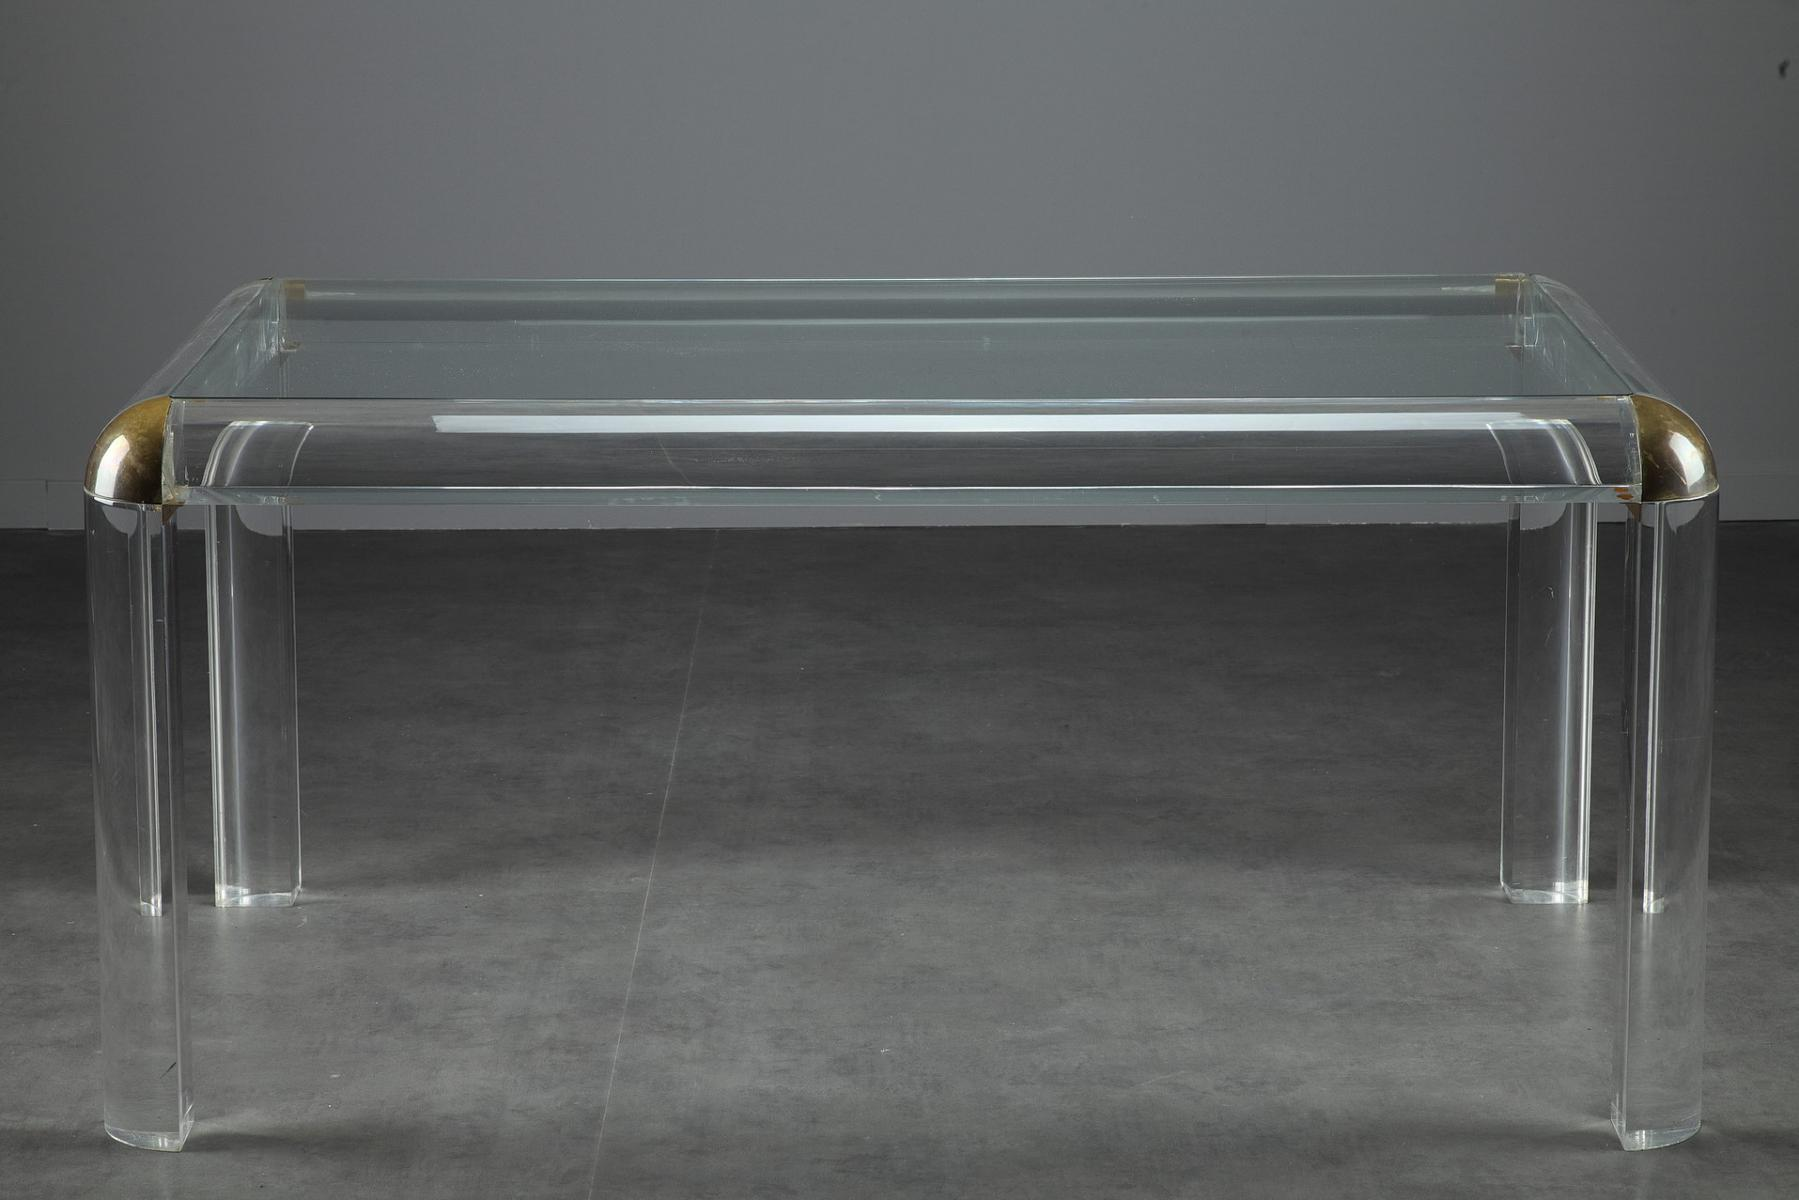 Italian Plexiglass Table, 1970s for sale at Pamono